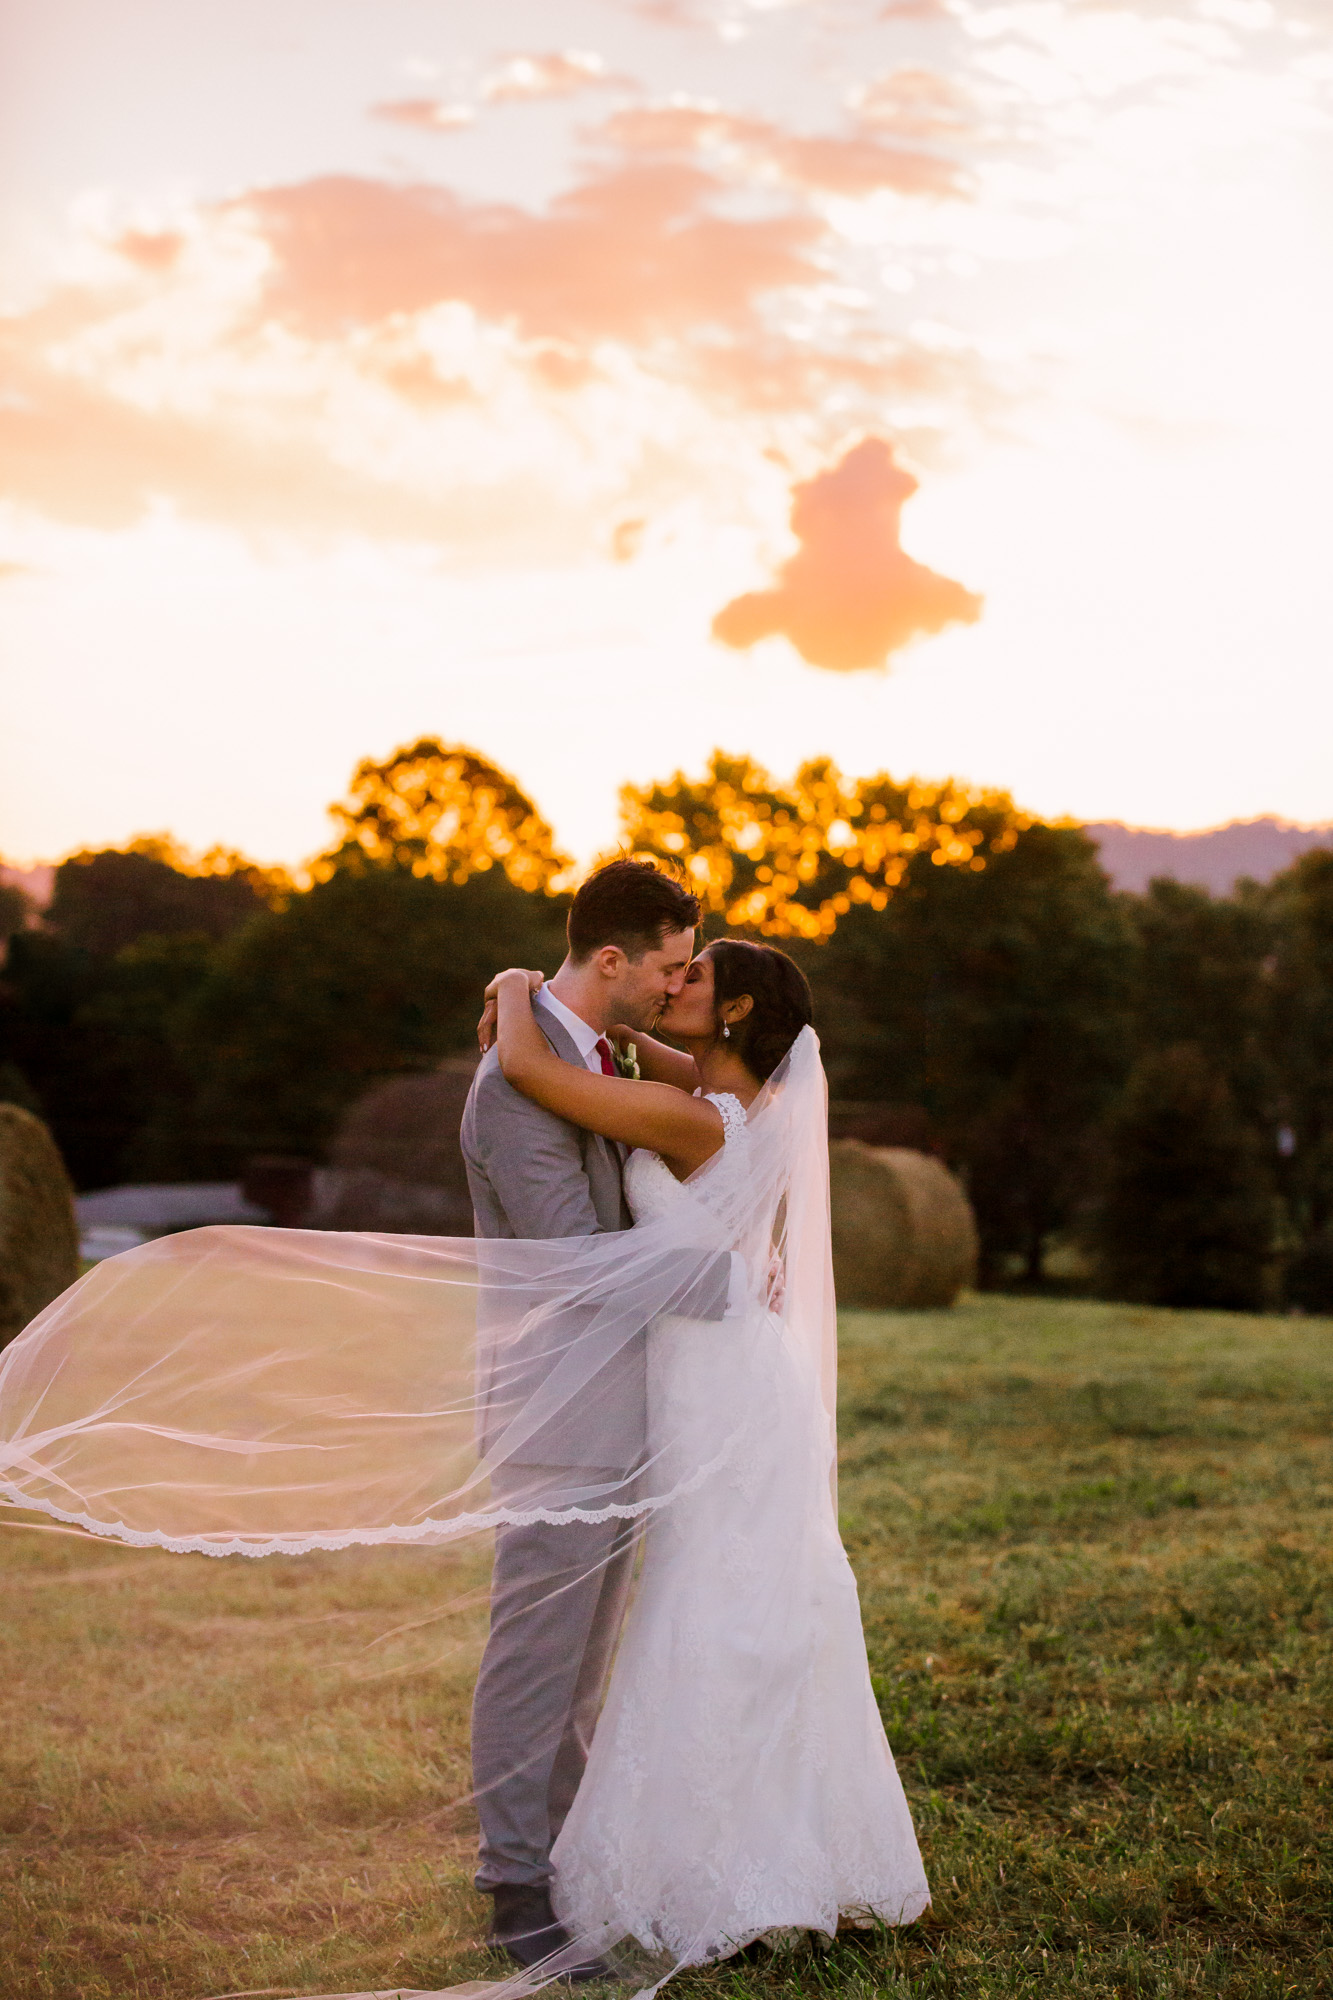 Waynesville NC Wedding Photography | Bride and Groom Portrait Sunset Kissing